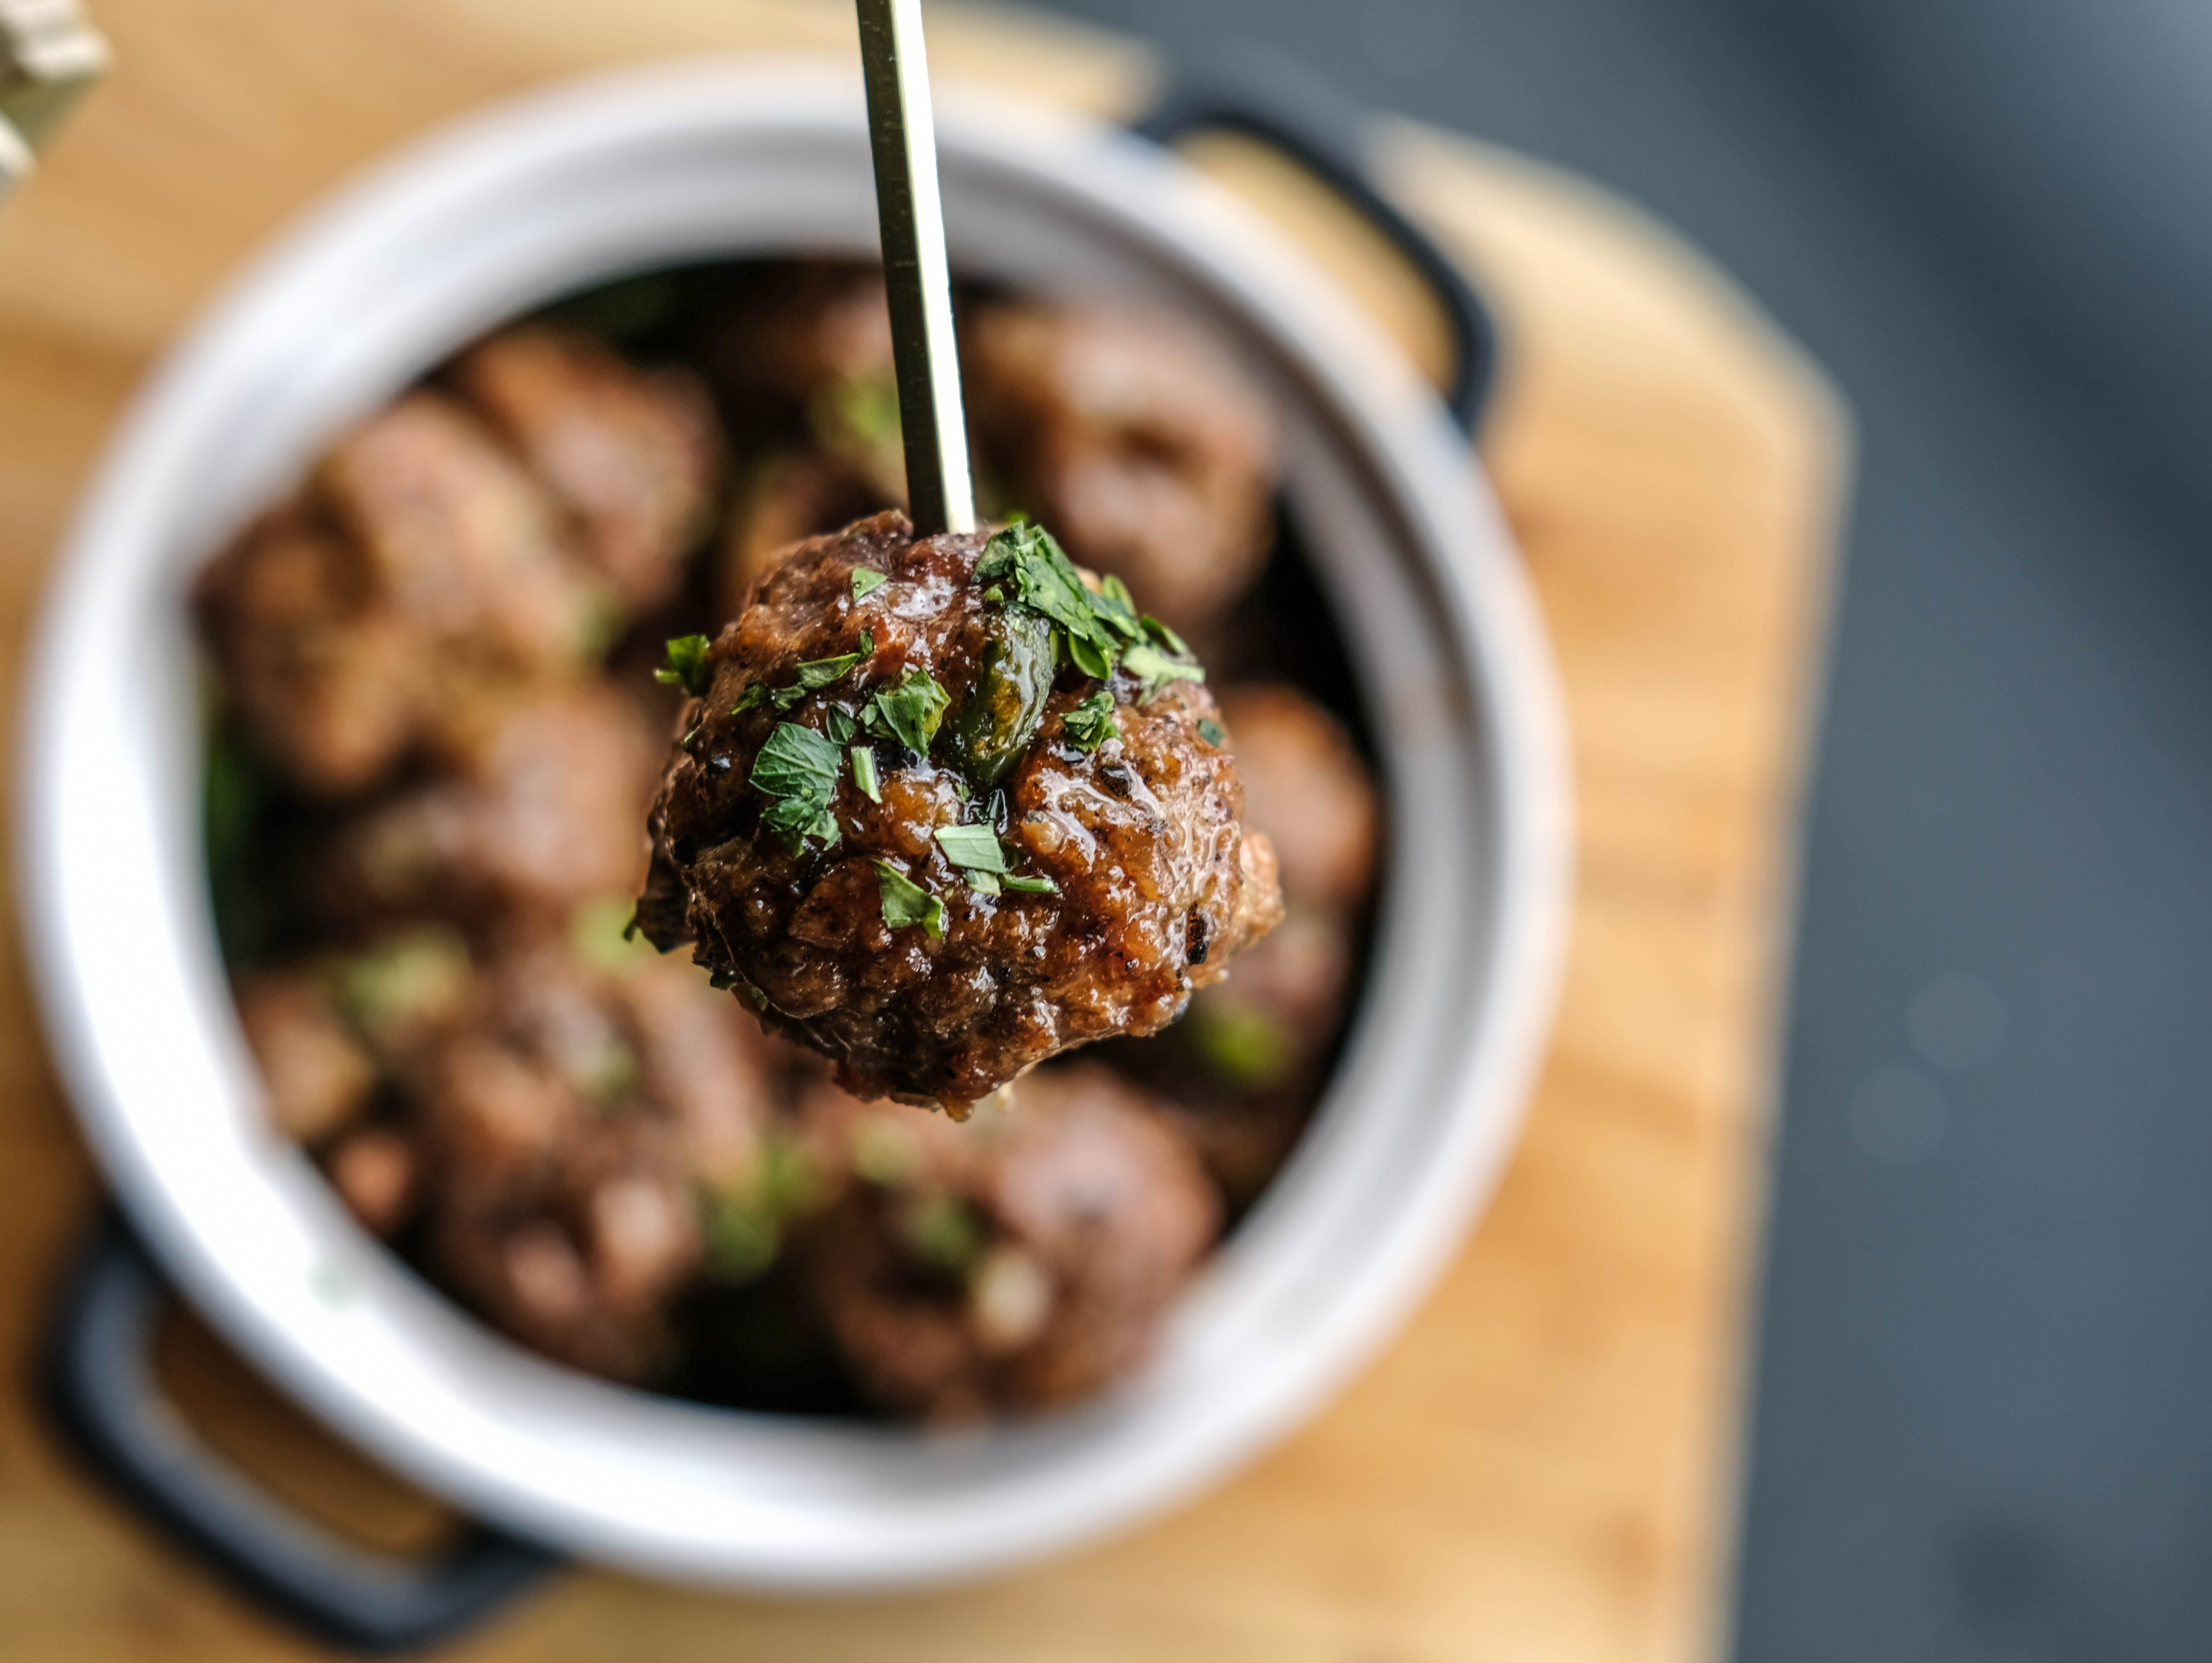 The perfect meatball recipe to try for your next tailgate.